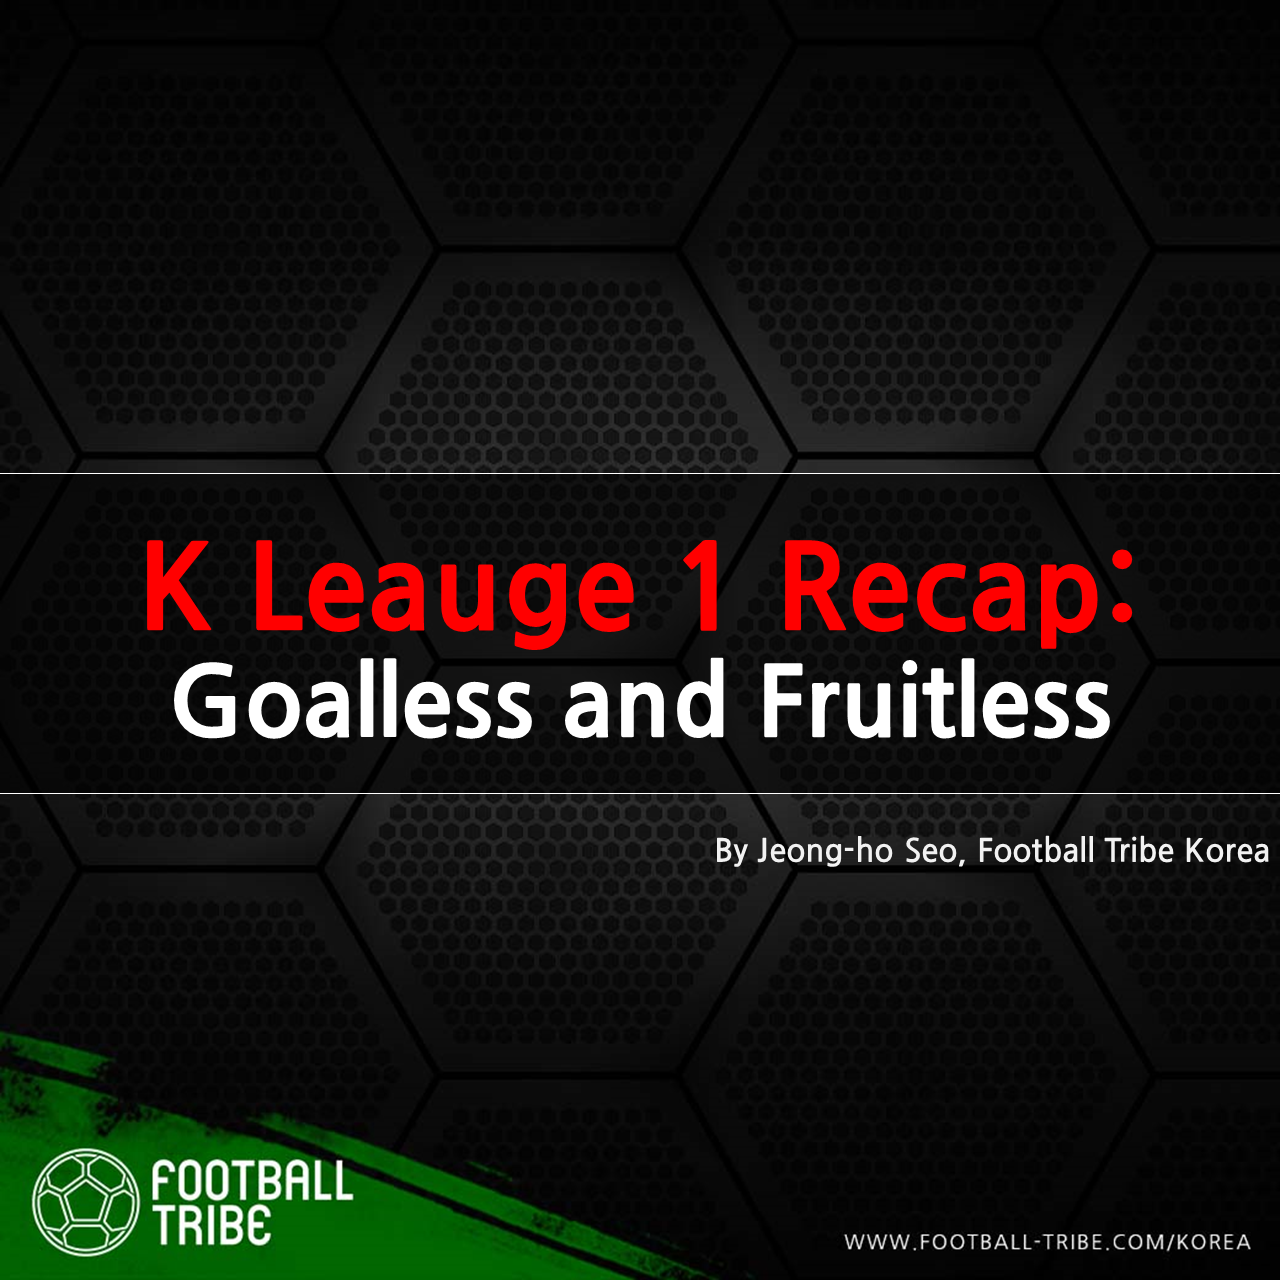 K League 1 Recap: Goalless and fruitless